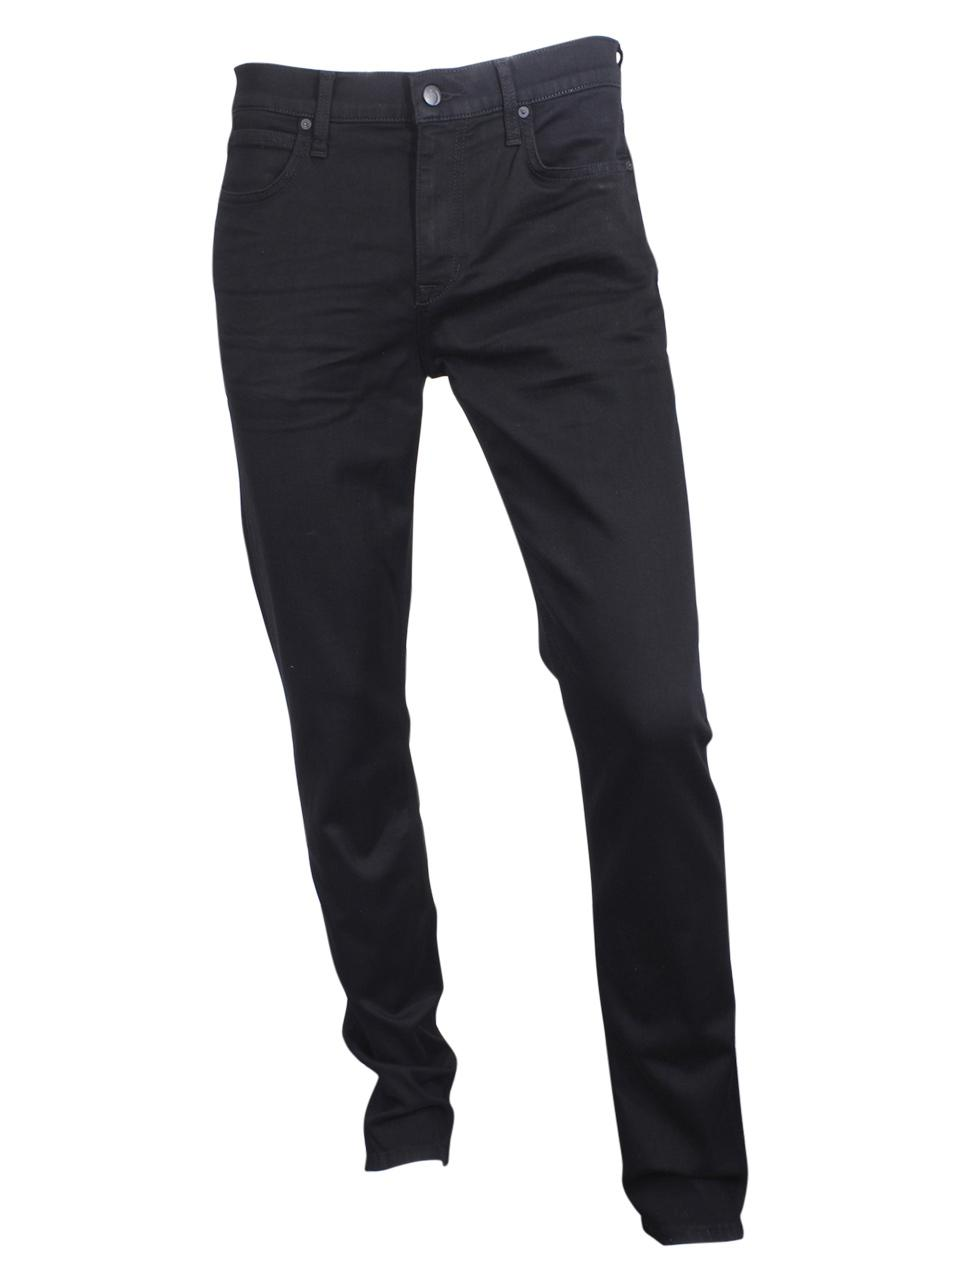 Image of Joe's Jeans Men's The Brixton Kinetic Straight + Narrow Jeans - Griffith - 30x34